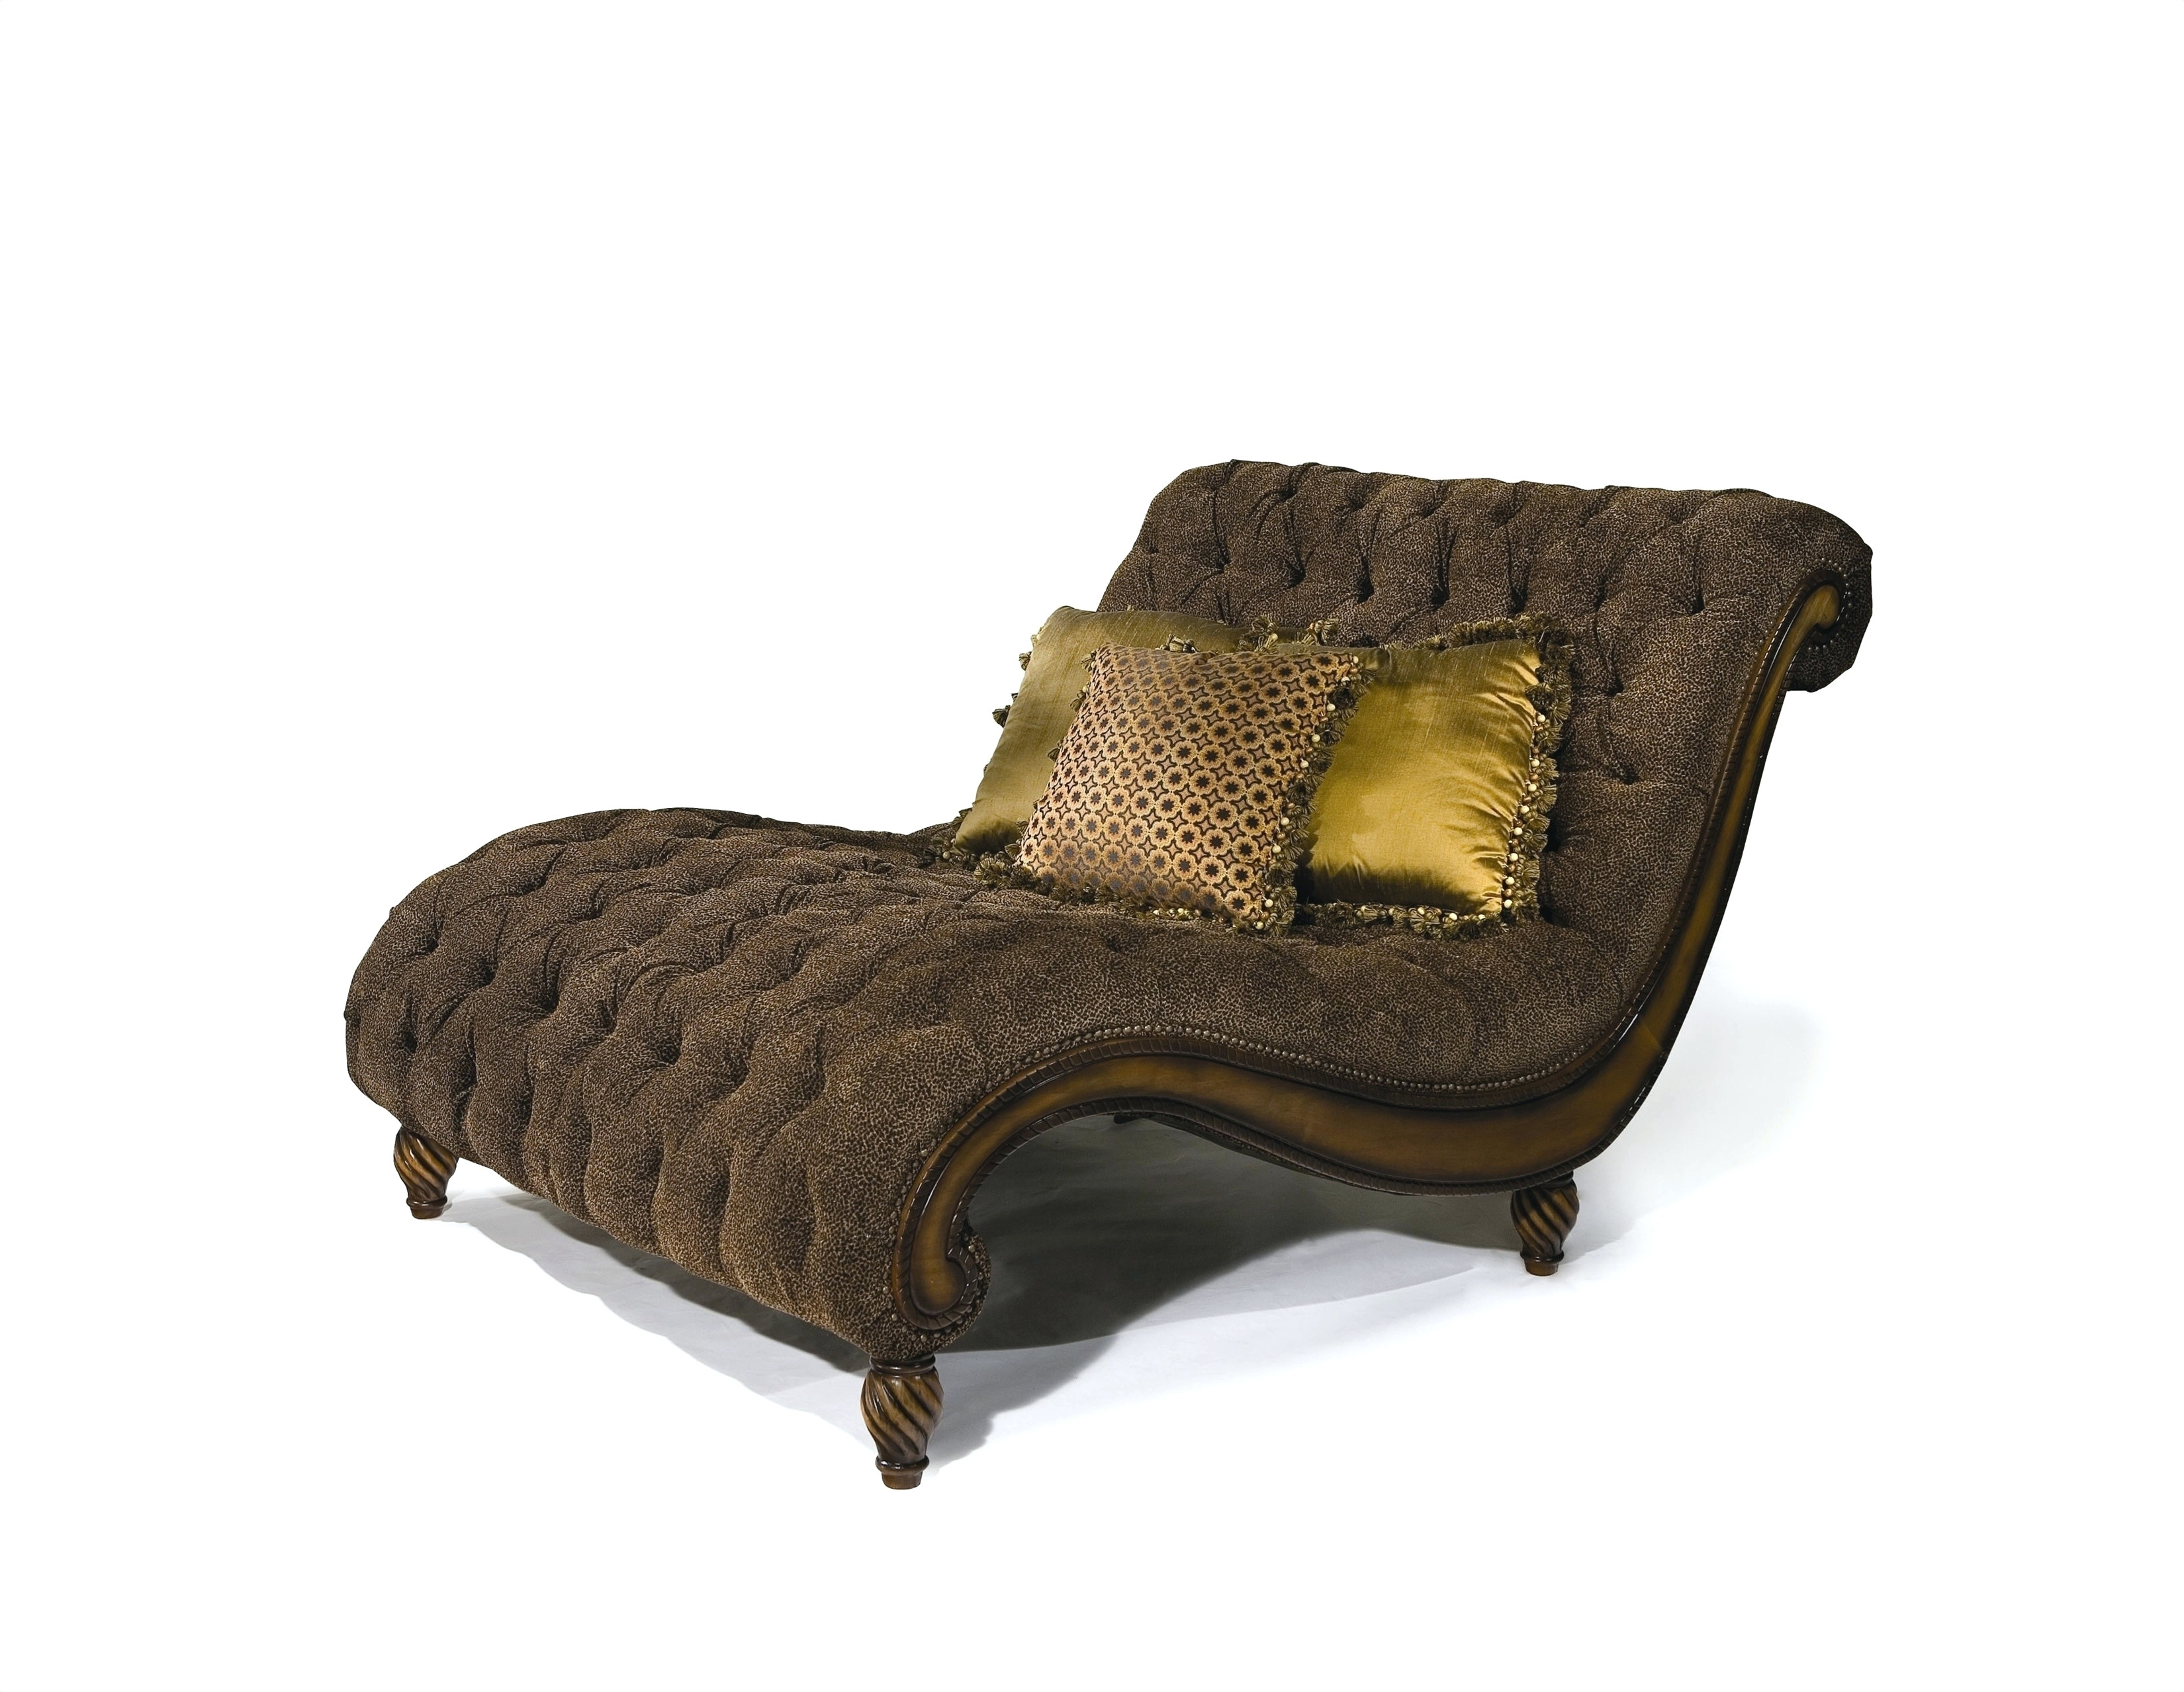 Fashionable Leopard Chaise Lounge Chair • Lounge Chairs Ideas With Regard To Luxury Chaise Lounge Chairs (View 2 of 15)